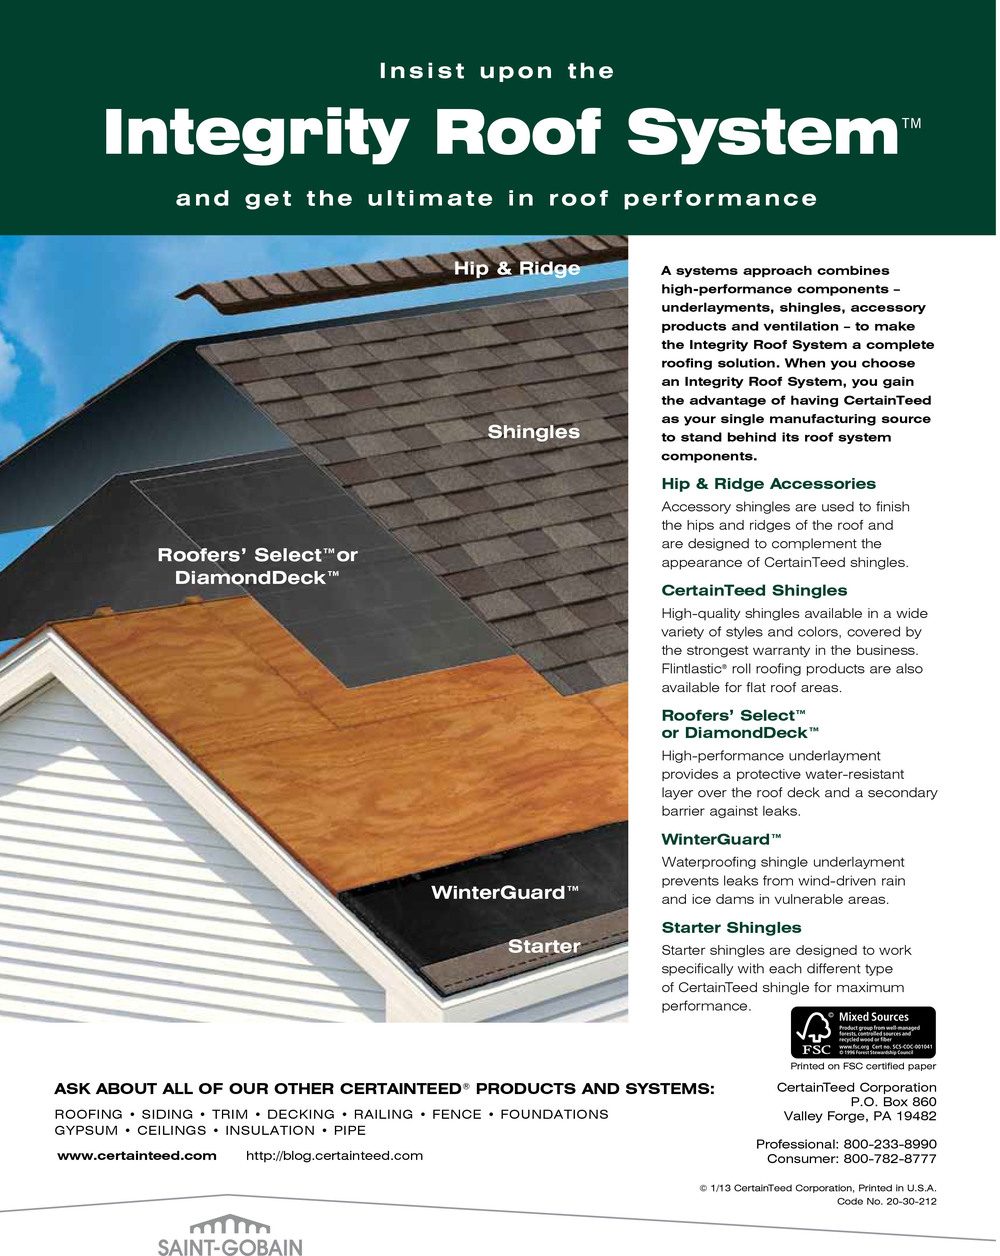 Integrity Roof System-1.jpg